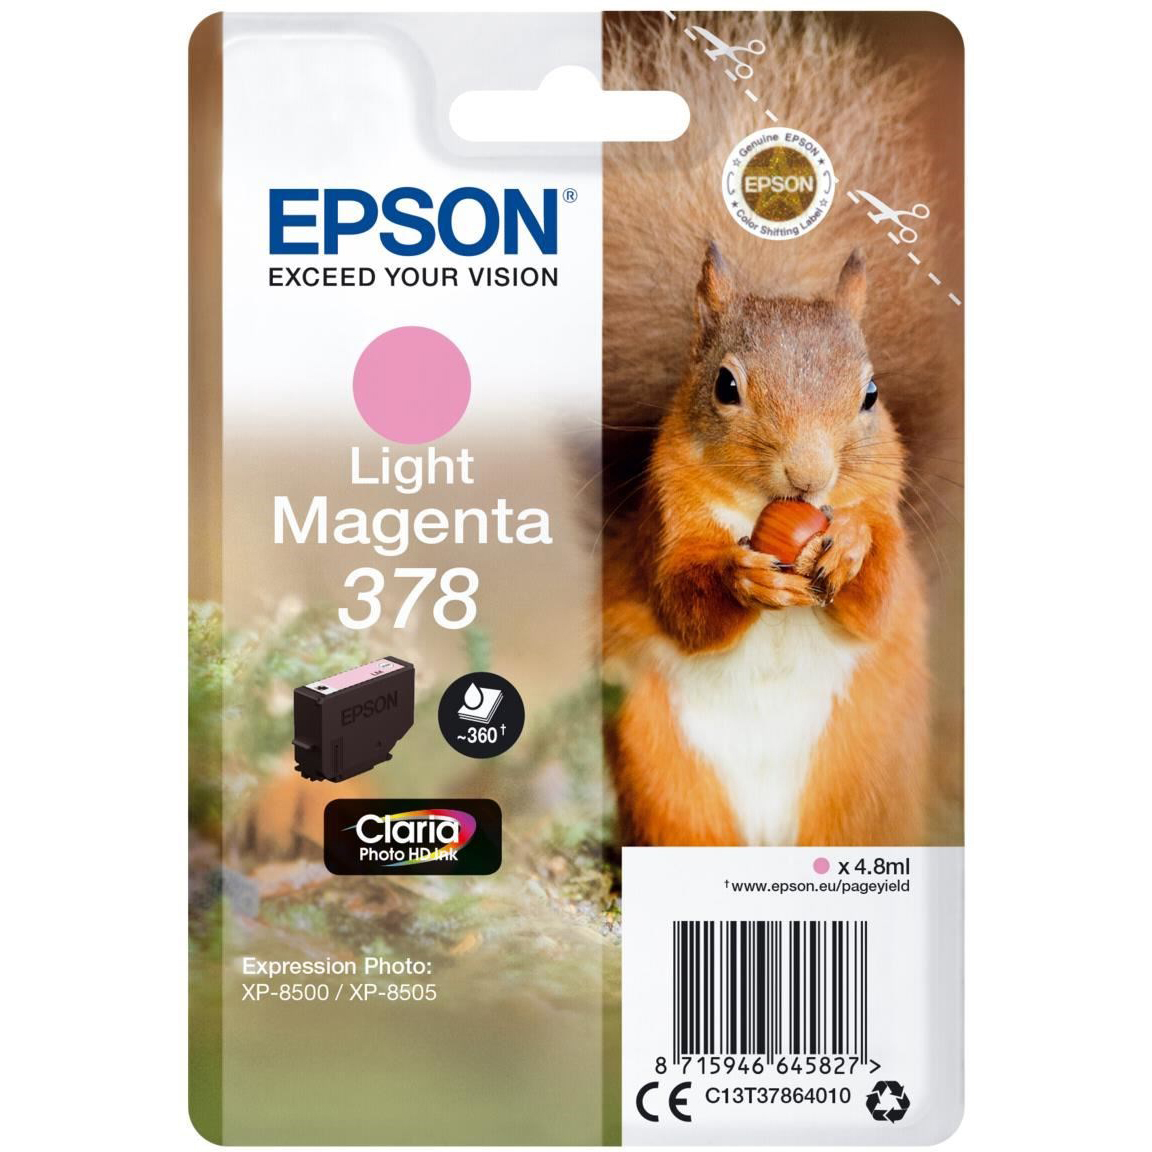 Original Epson 378 Light Magenta Ink Cartridge (C13T37864010)